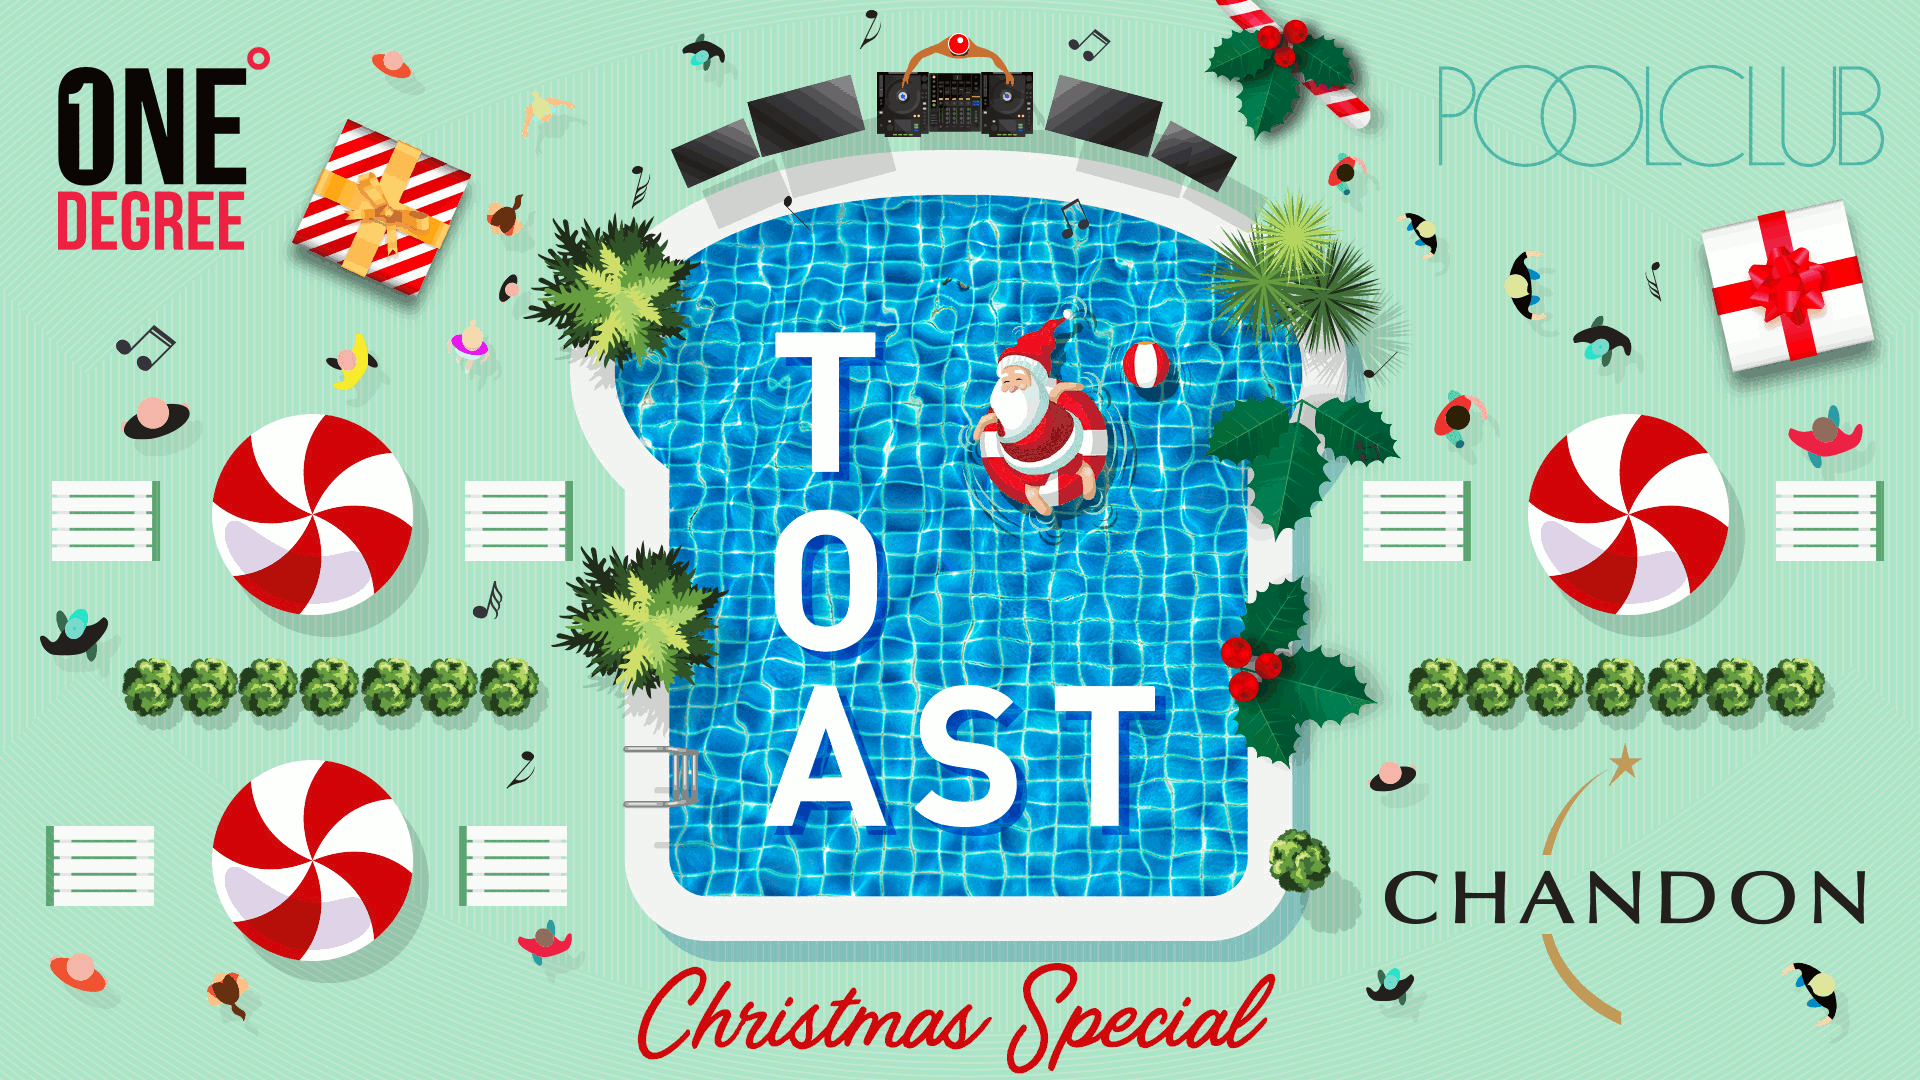 Tickets for Toast - The Christmas Special in Sydney from Merivale